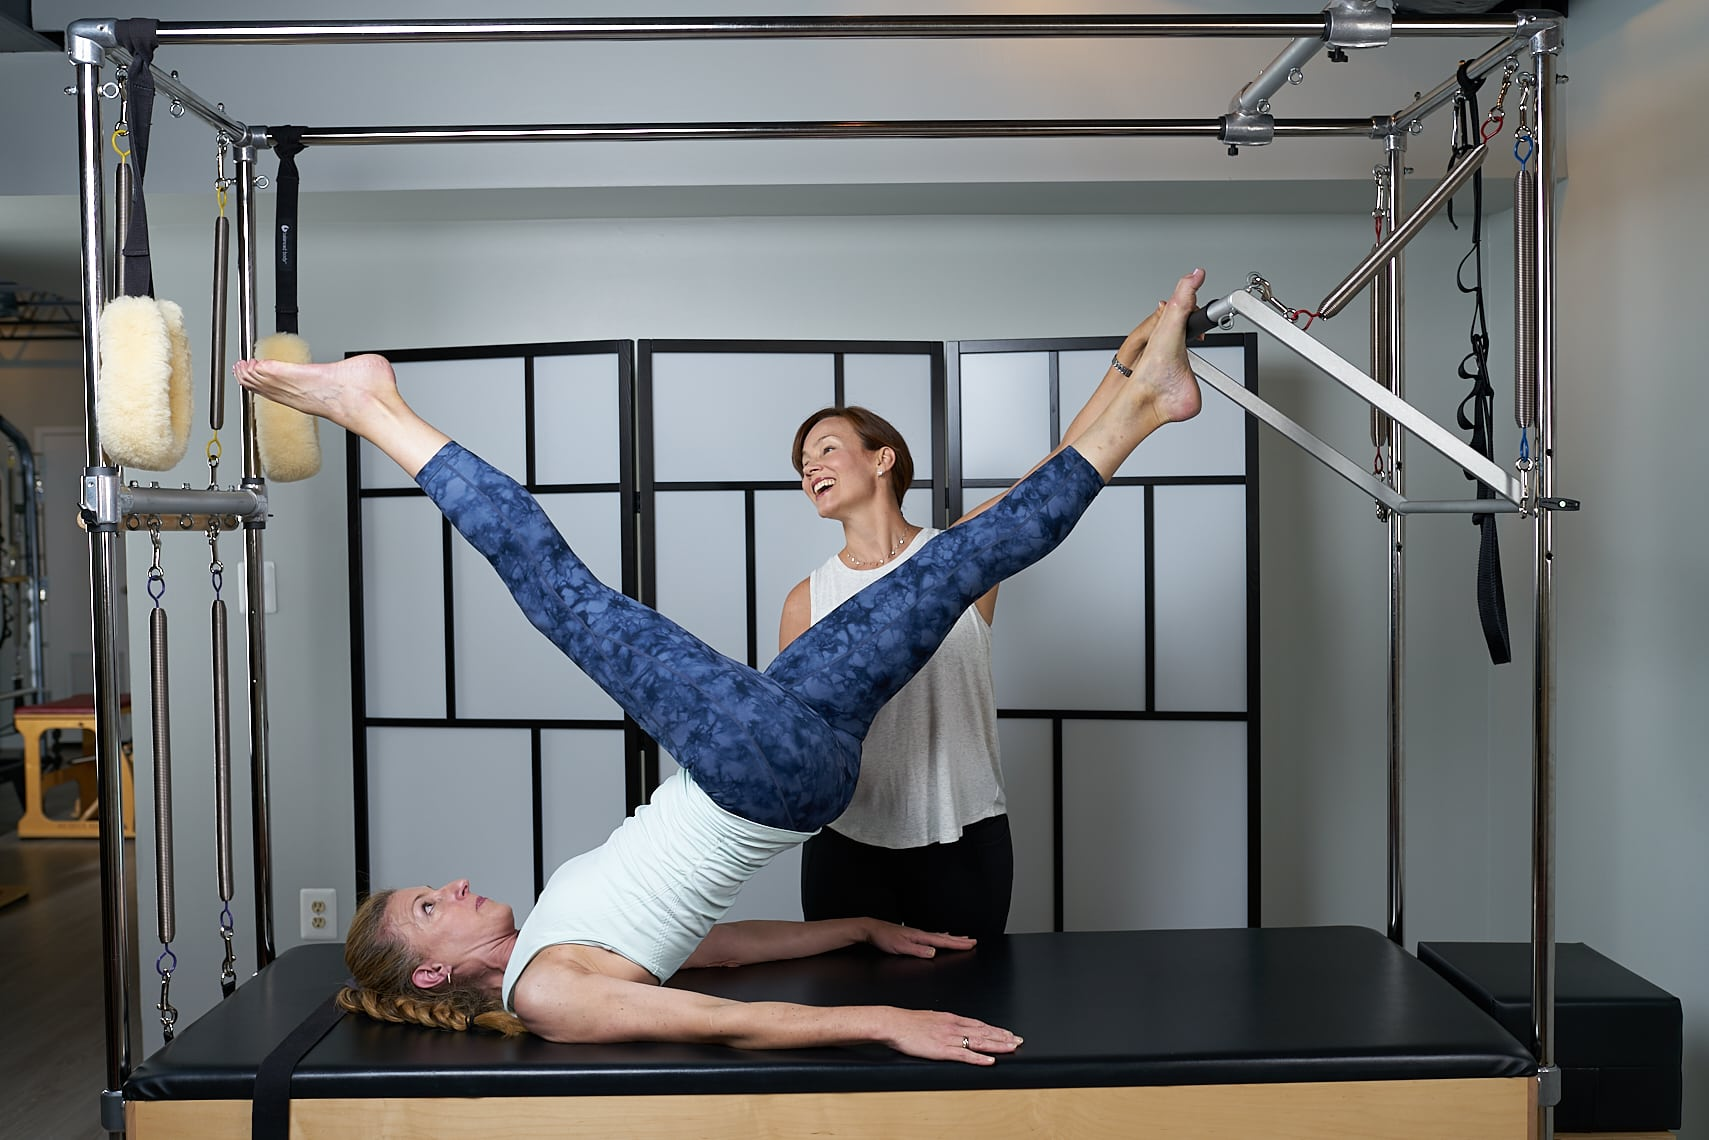 Mariah Sotelino teaching a private client on a Cadillac/ Trapeze table